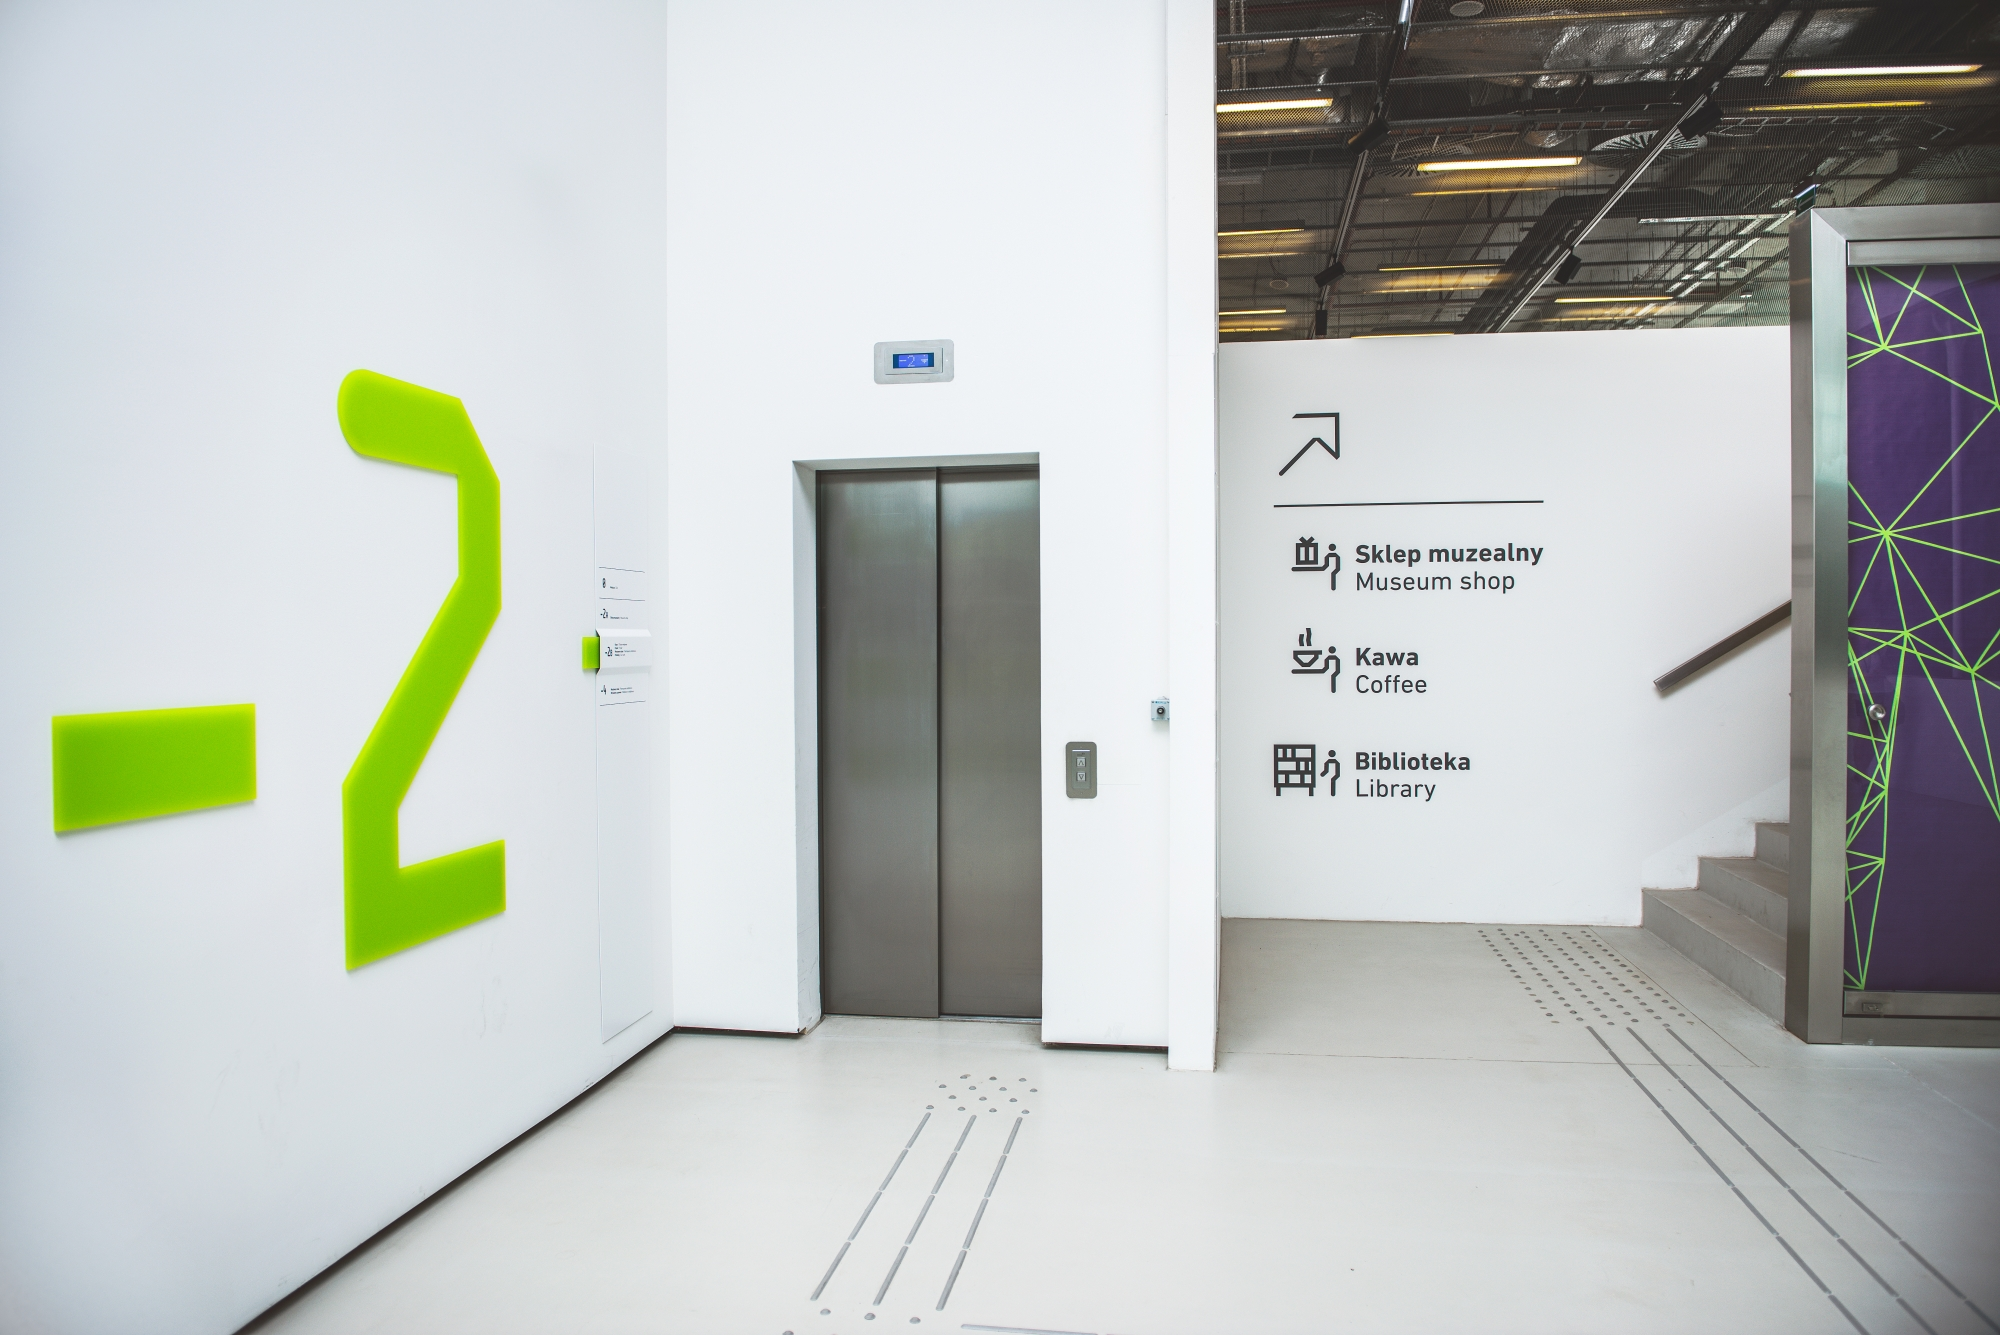 Wayfinding System In Silesian Museum - Fonts